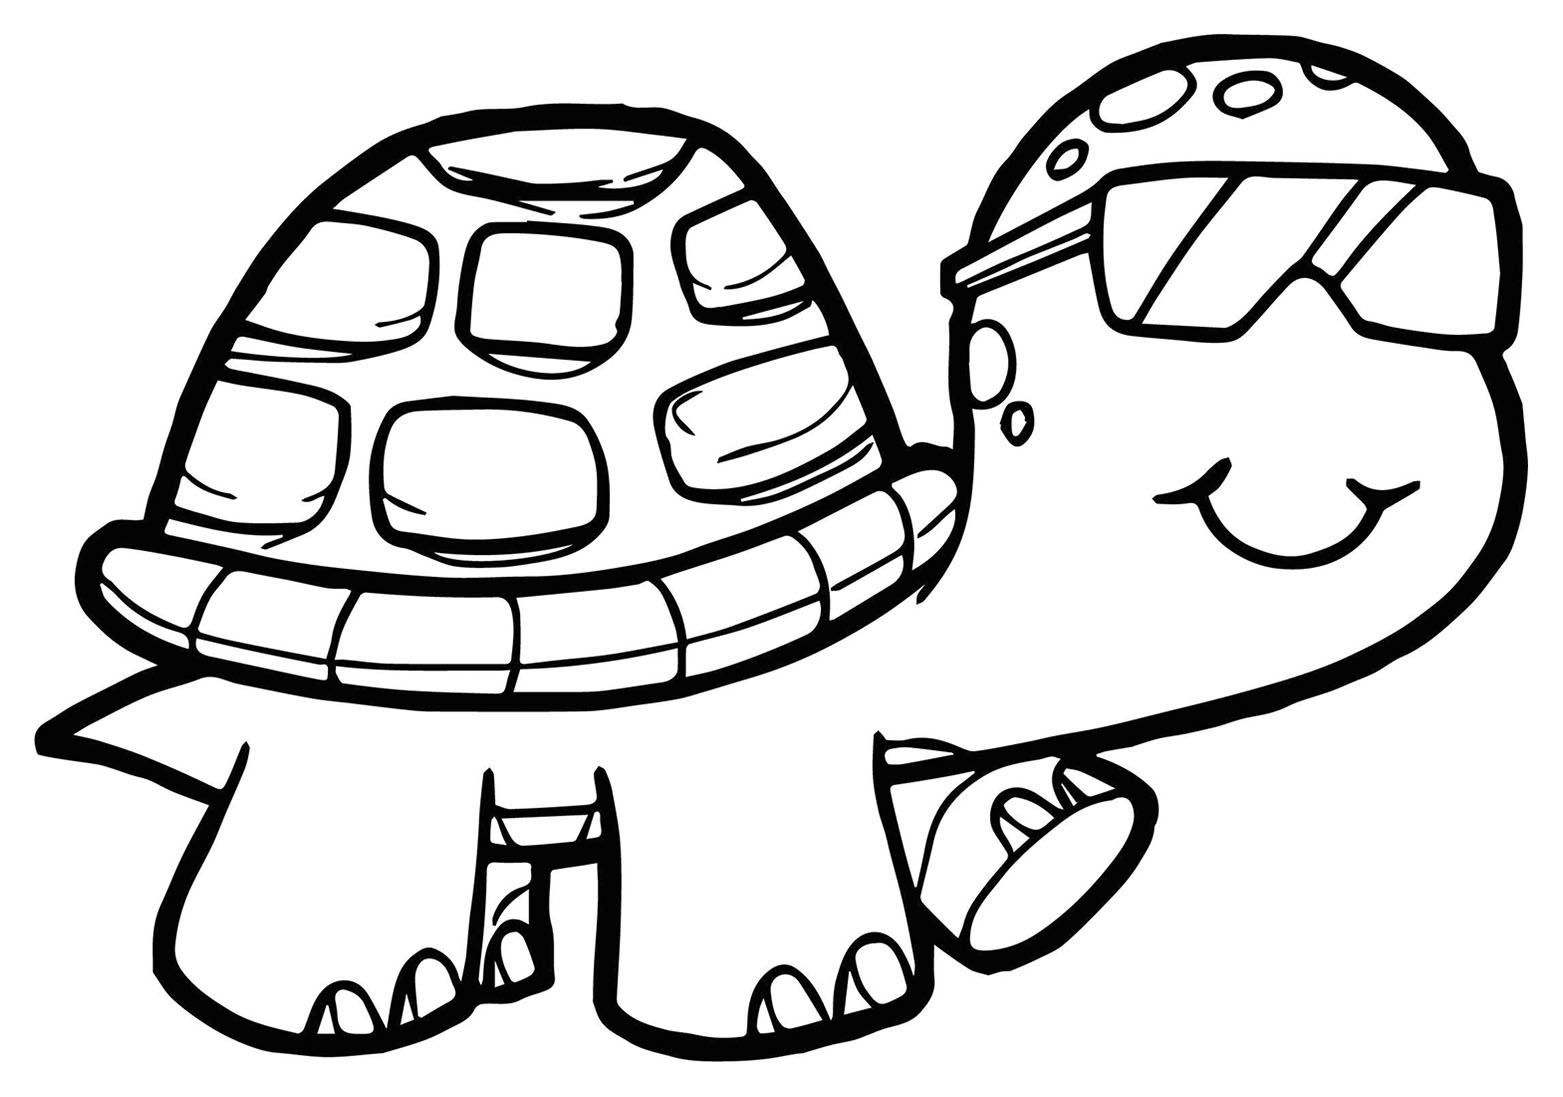 turtle pictures to color turtle outline drawing at getdrawings free download pictures to color turtle